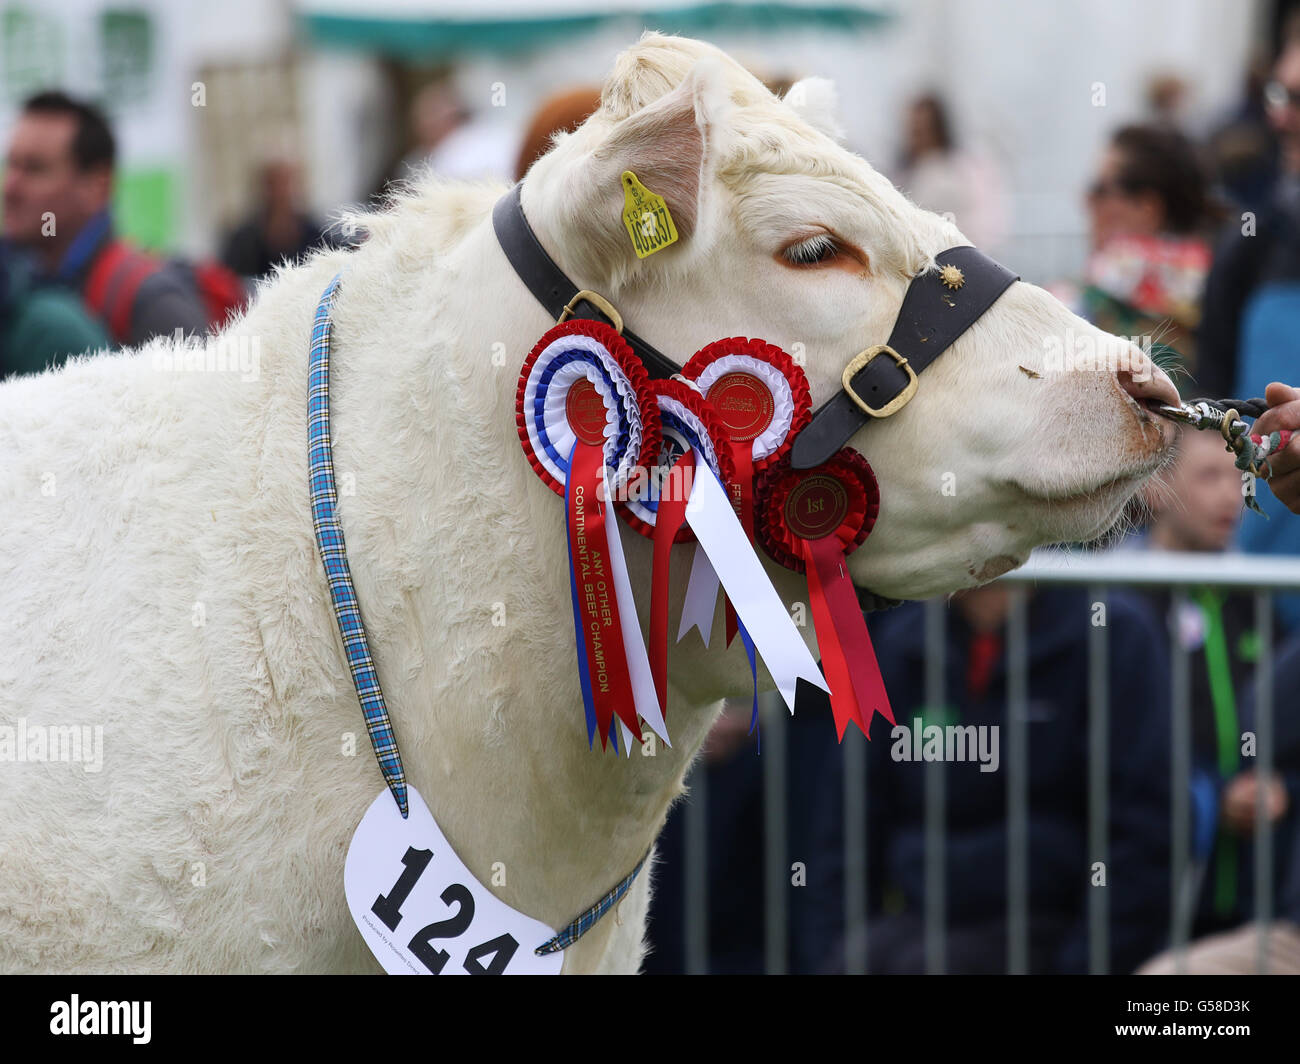 Bywell, England - May 30, 2016: Champion cow at the Northumberland County Show at Bywell in Northumberland, England. Stock Photo